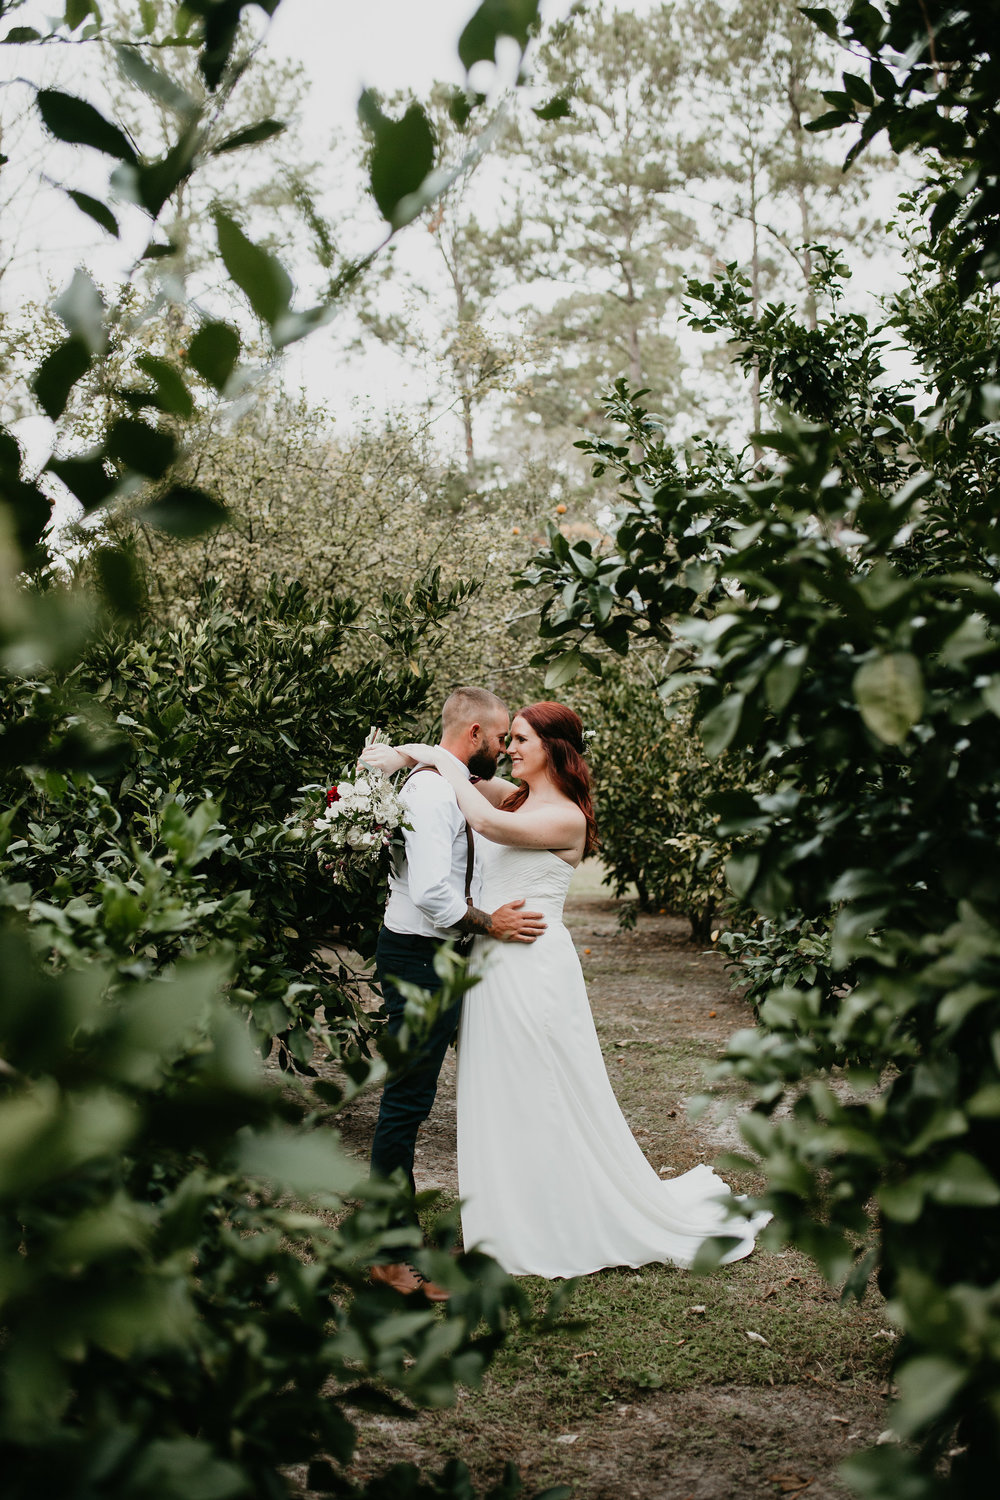 Southern Style Florida Wedding Venue Together-103.jpg